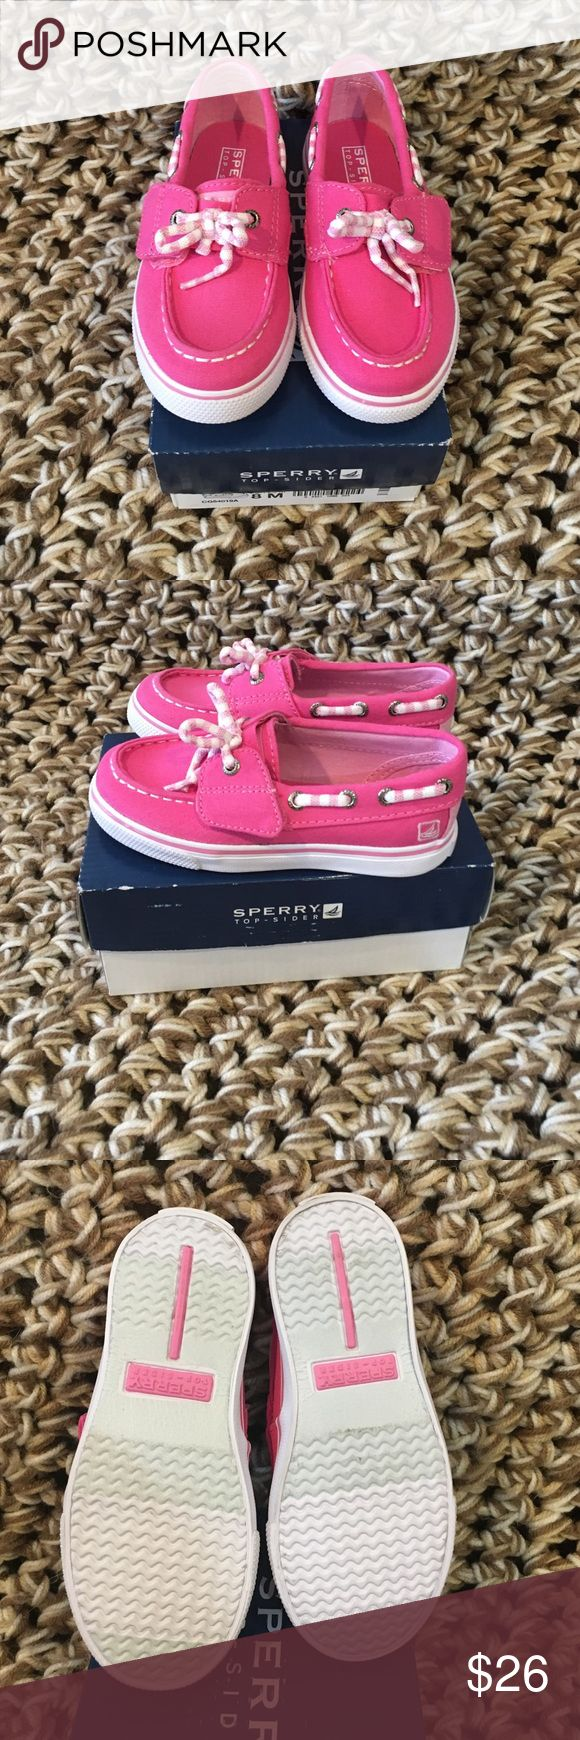 ❤️️Cutest Ever Pink and White Sperry Top-Sider's Cutest Ever Pink and White Sperry's Top-Sider's. Toddler size 8. Brand new, never been worn except for to try on in the store. There are some marks on the bottom from walking around the store. Sperry Top-Sider Shoes Sneakers